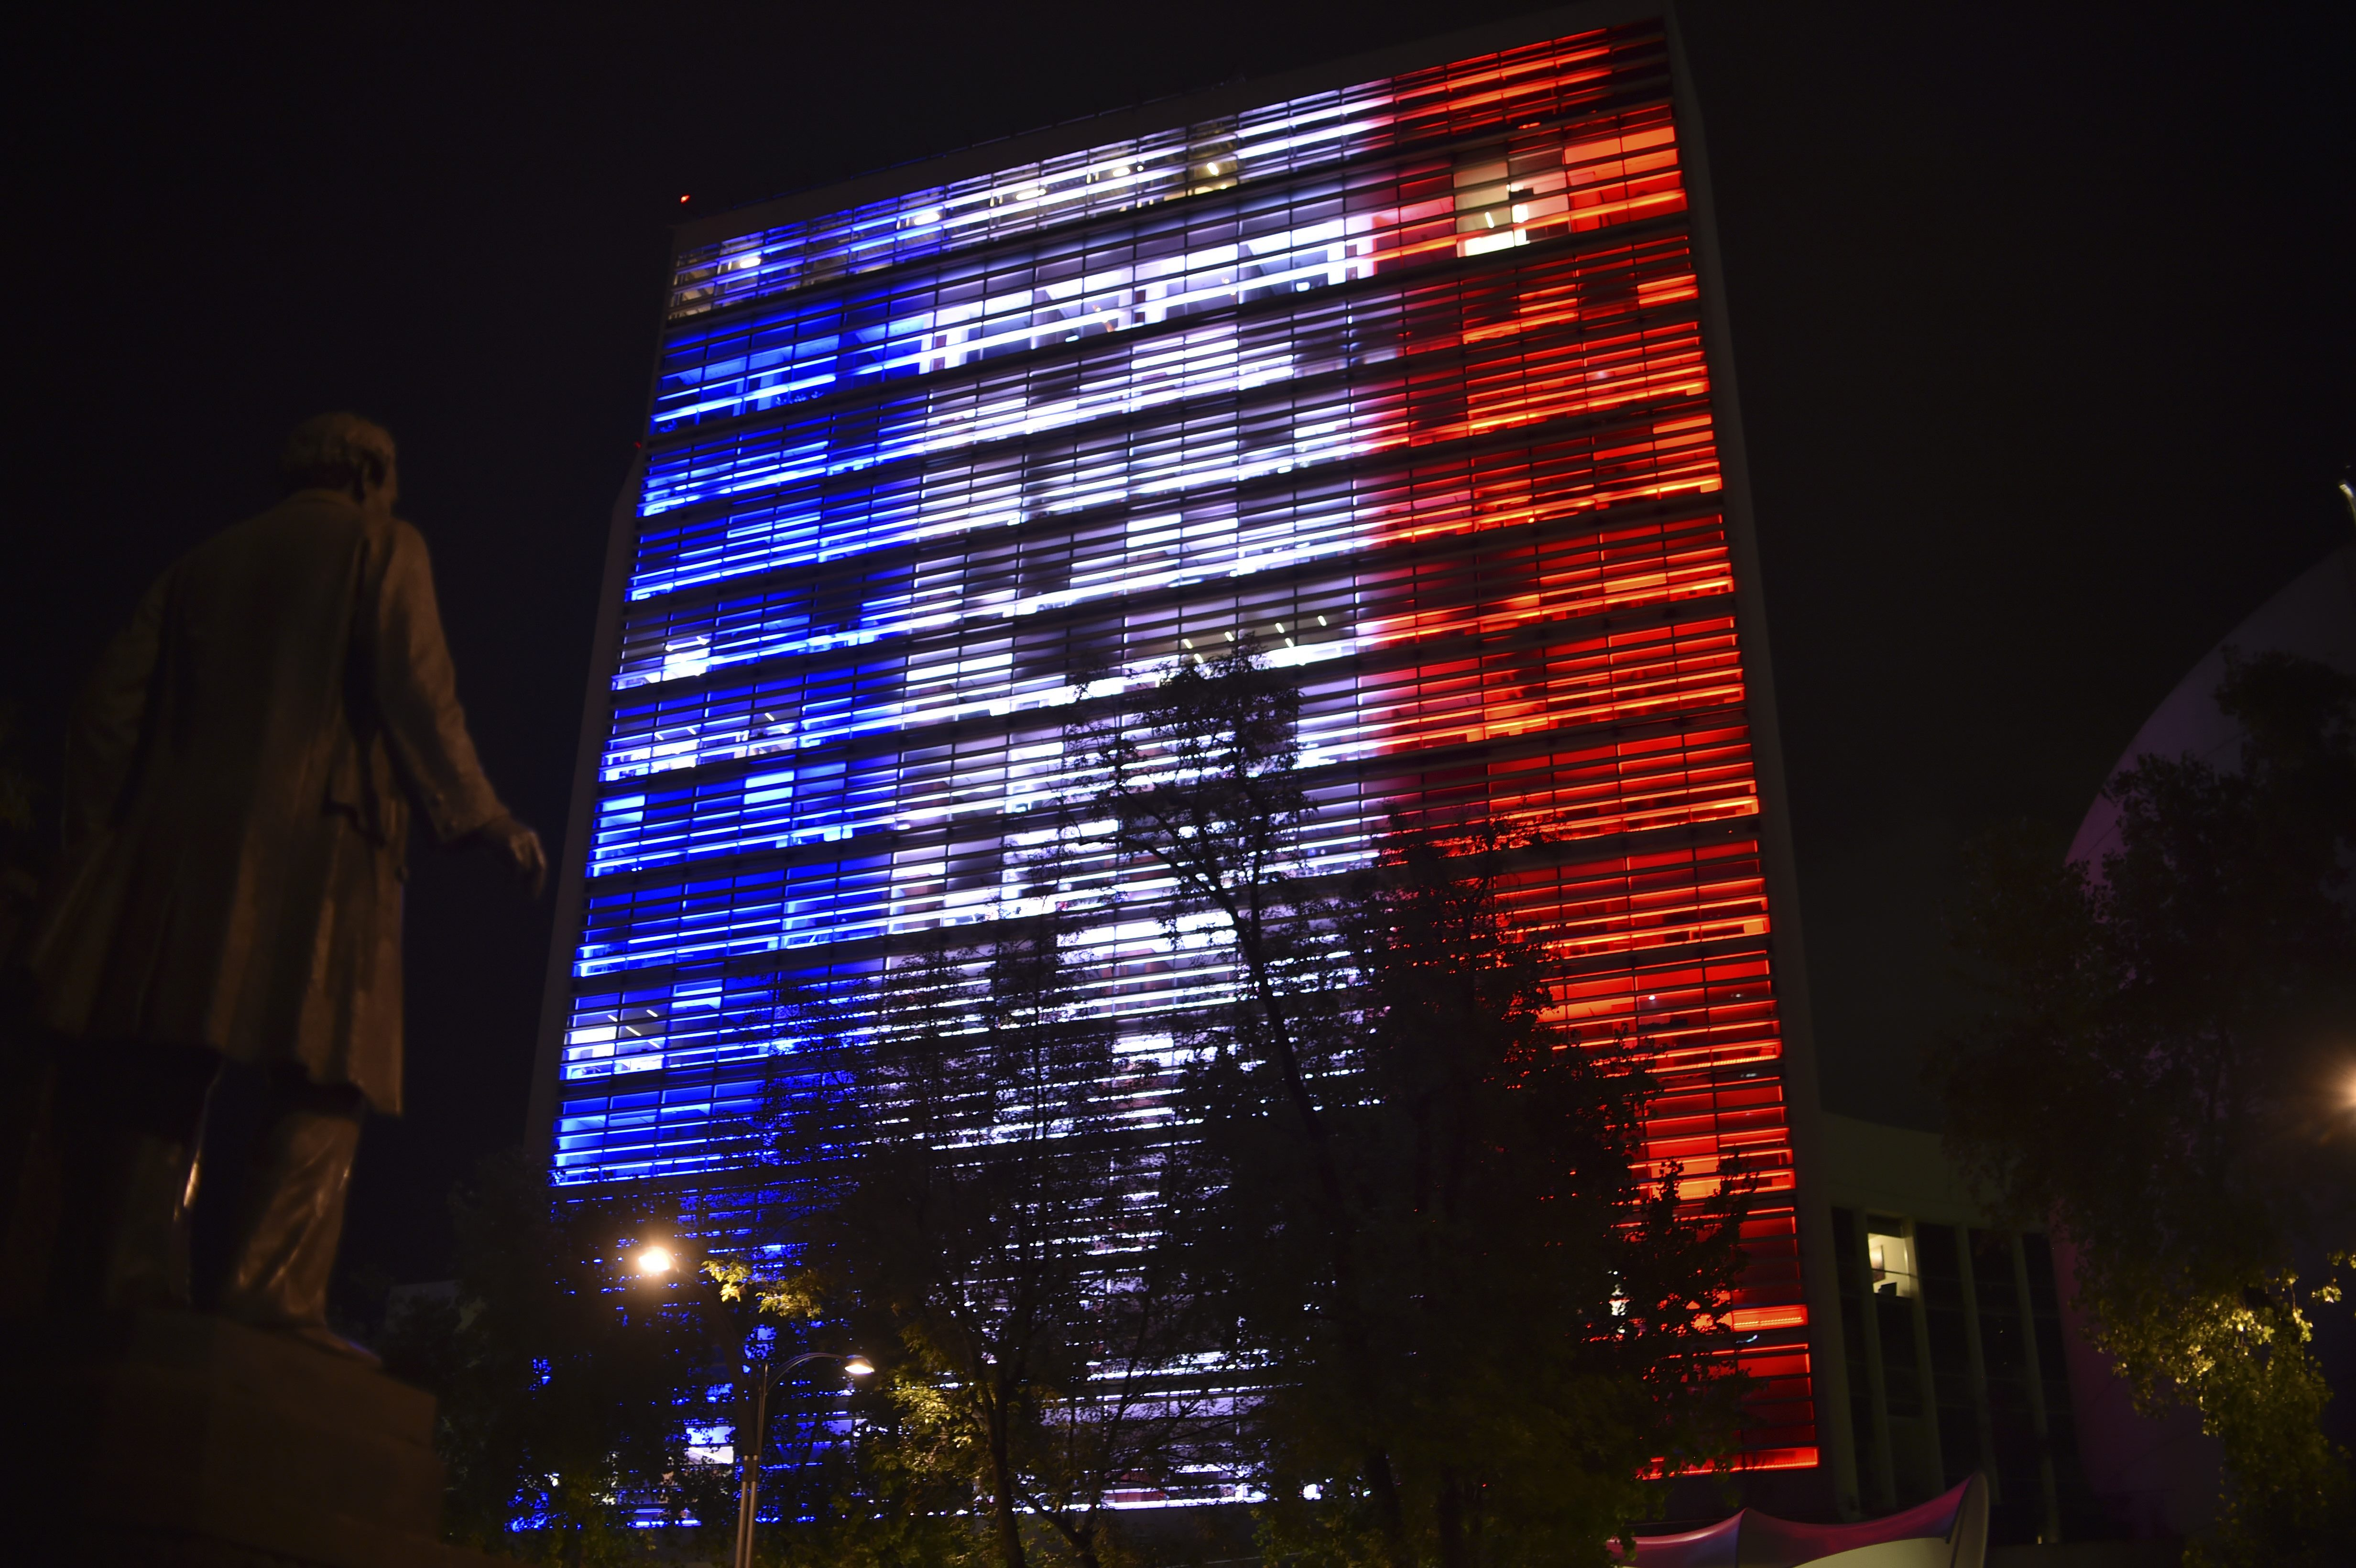 In solidarity following the deadly attack in Nice, France, the Mexican Senate building is illuminated with the colors of the French national flag in Mexico City on July 14, 2016